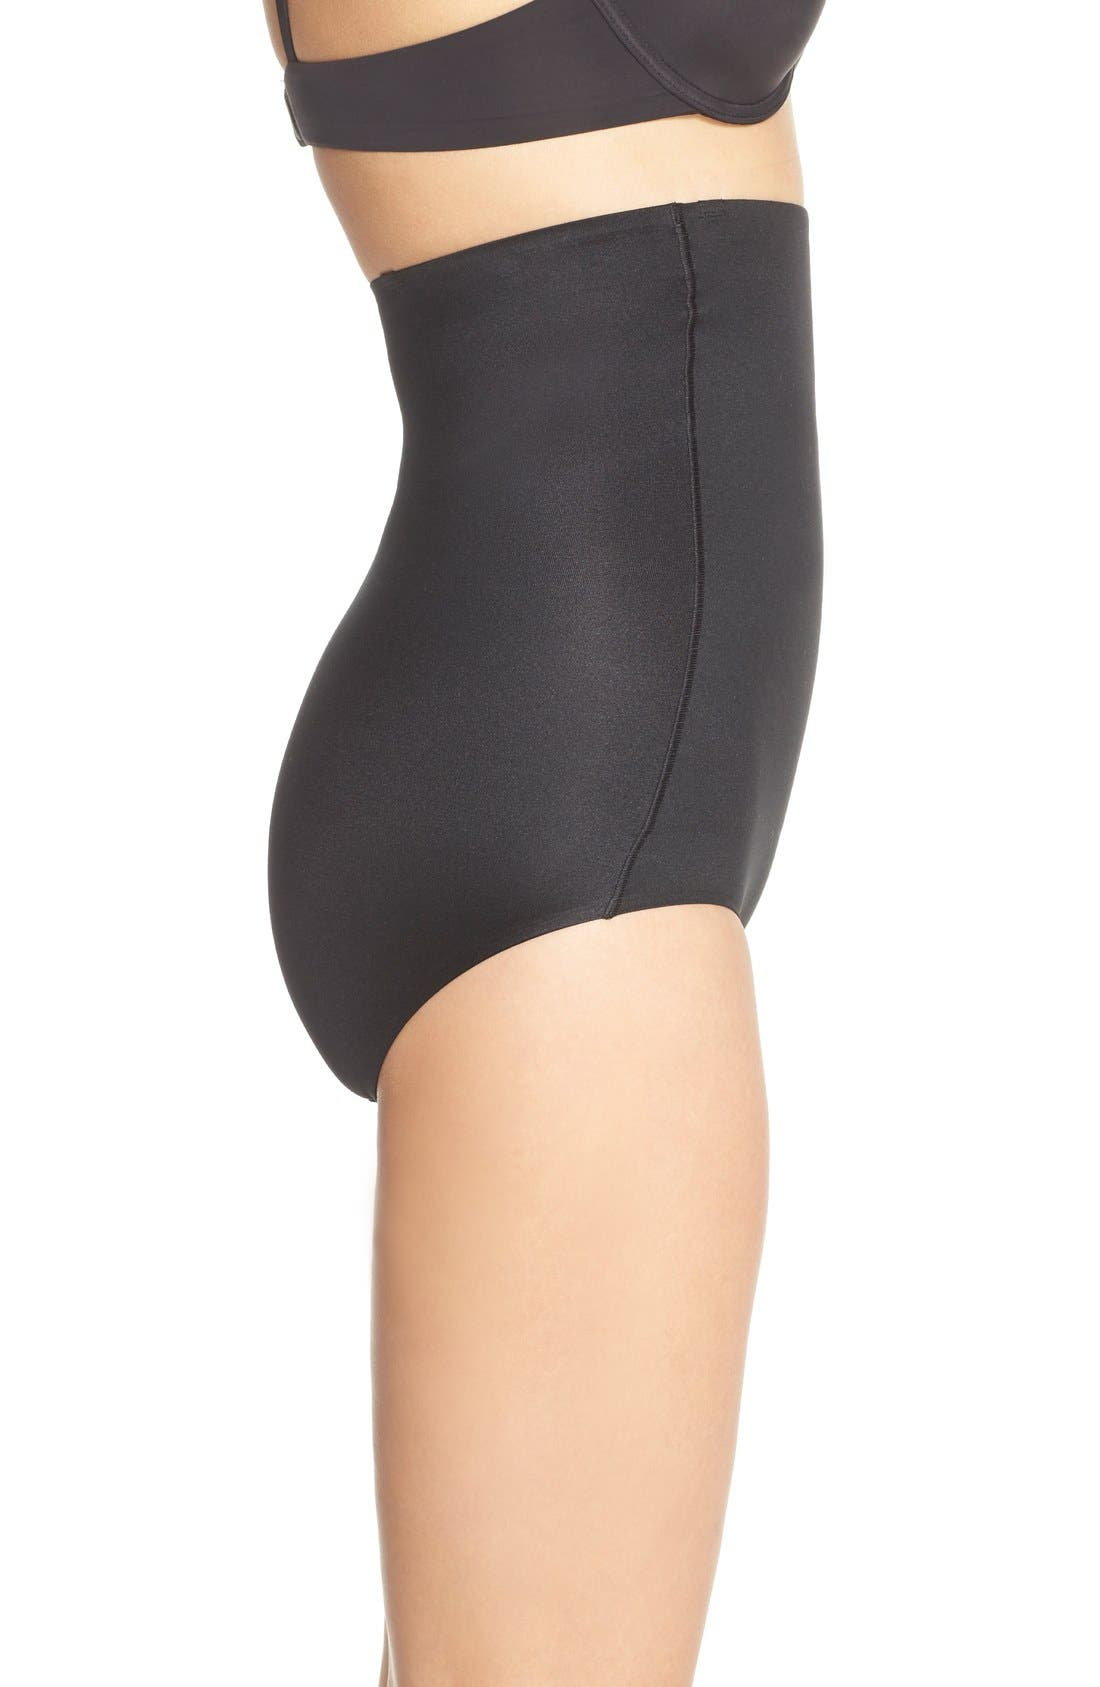 Alternate Image 3  - Wacoal 'Sensational Smoothing' High Waist Shaping Briefs